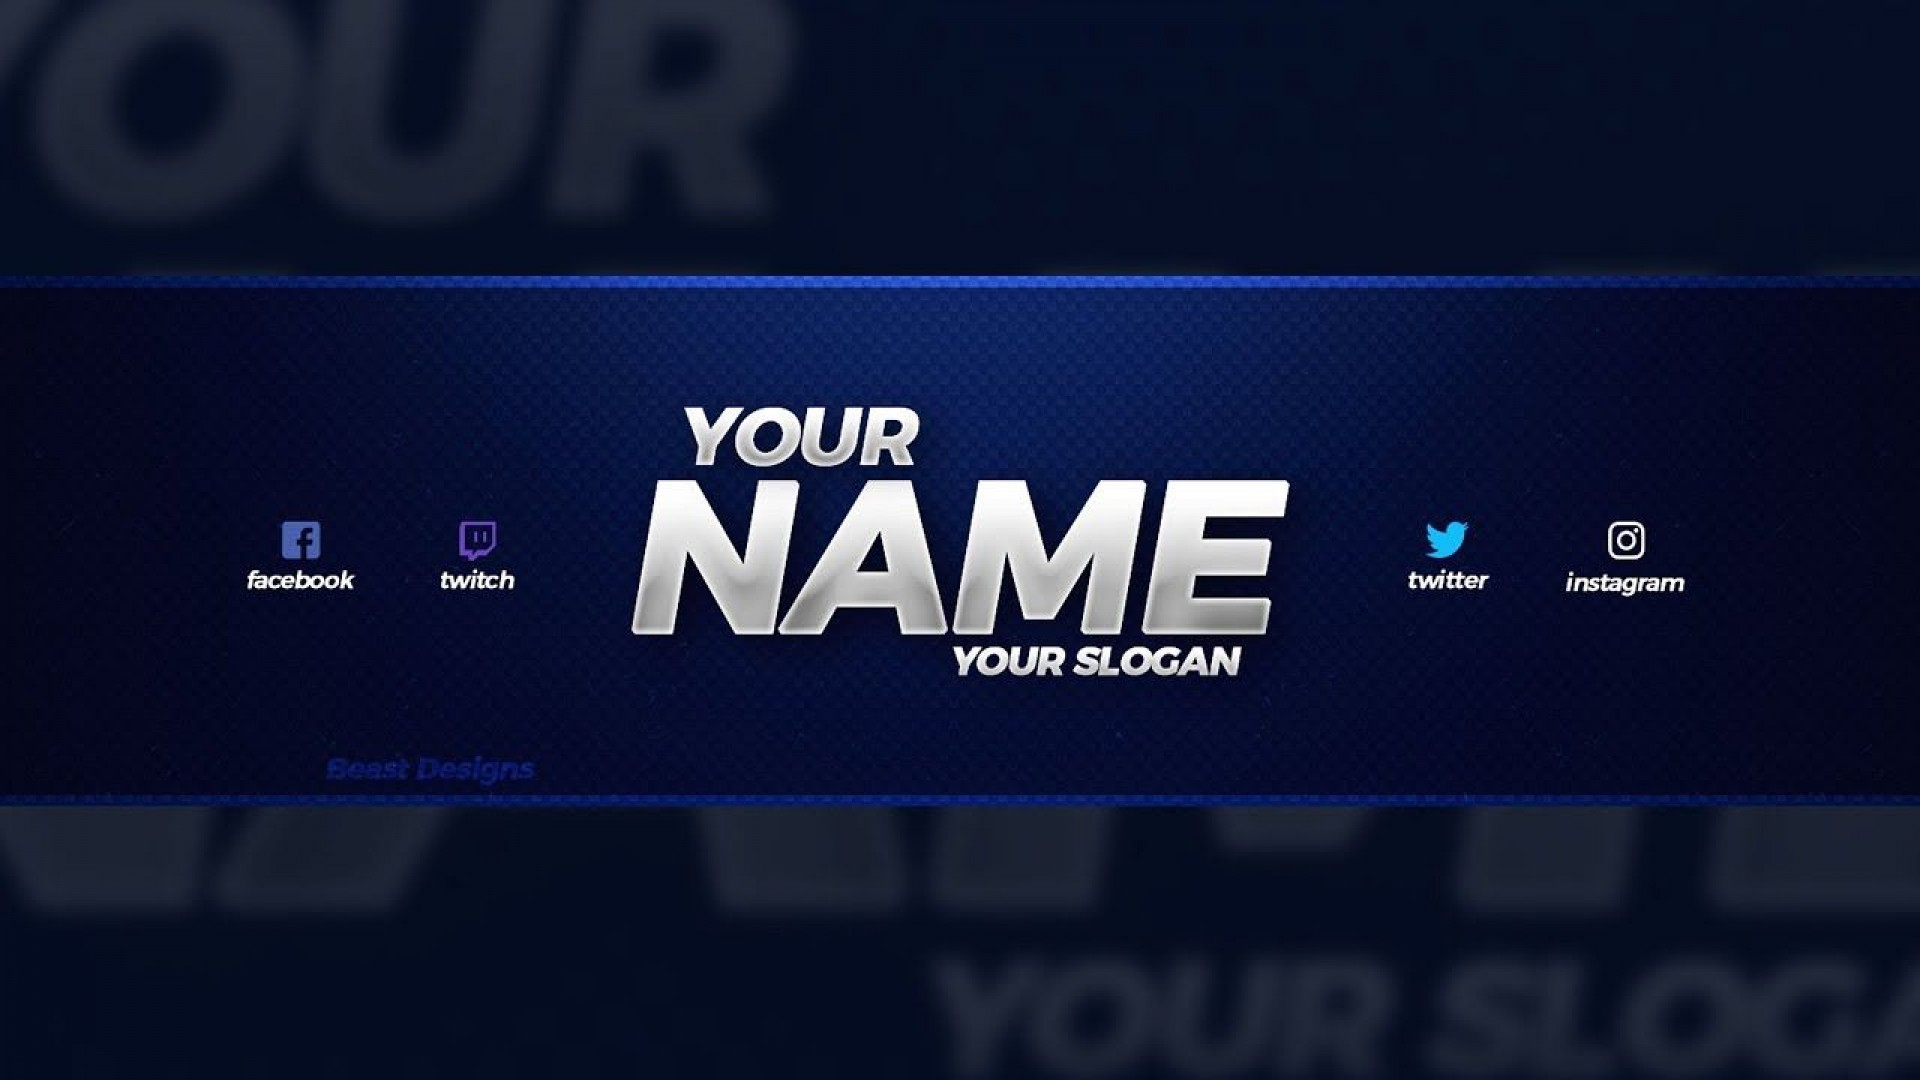 003 Excellent Youtube Channel Art Template Photoshop Download Inspiration 1920